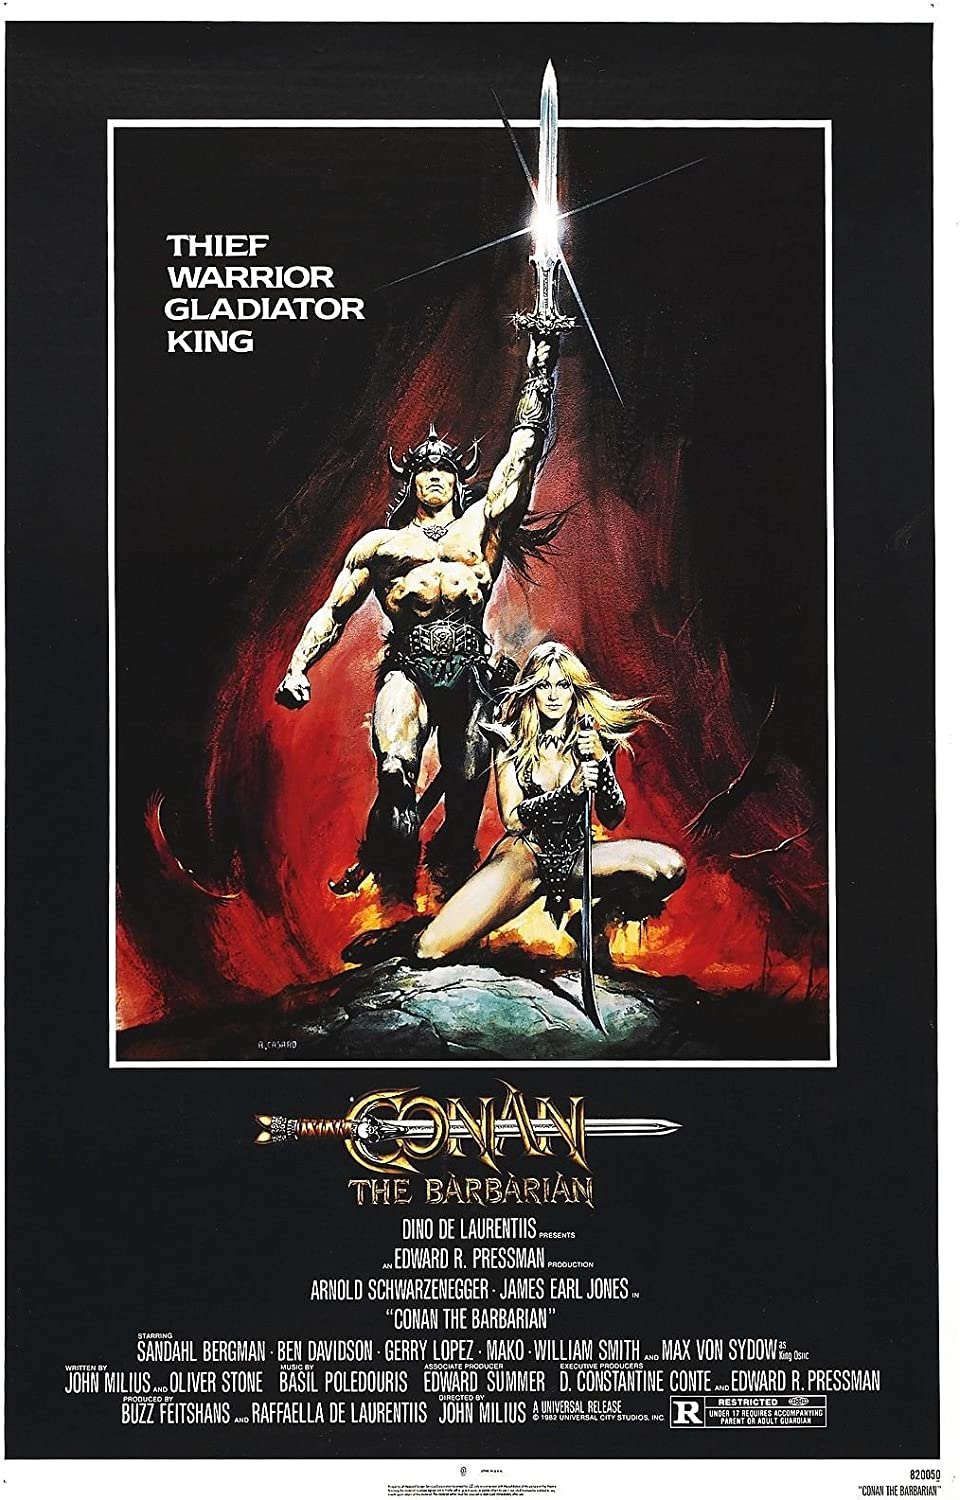 "Conan The Barbarian (1982) Movie Poster 24""x36"" Certified Print with Holographic Numbering for Authenticity"